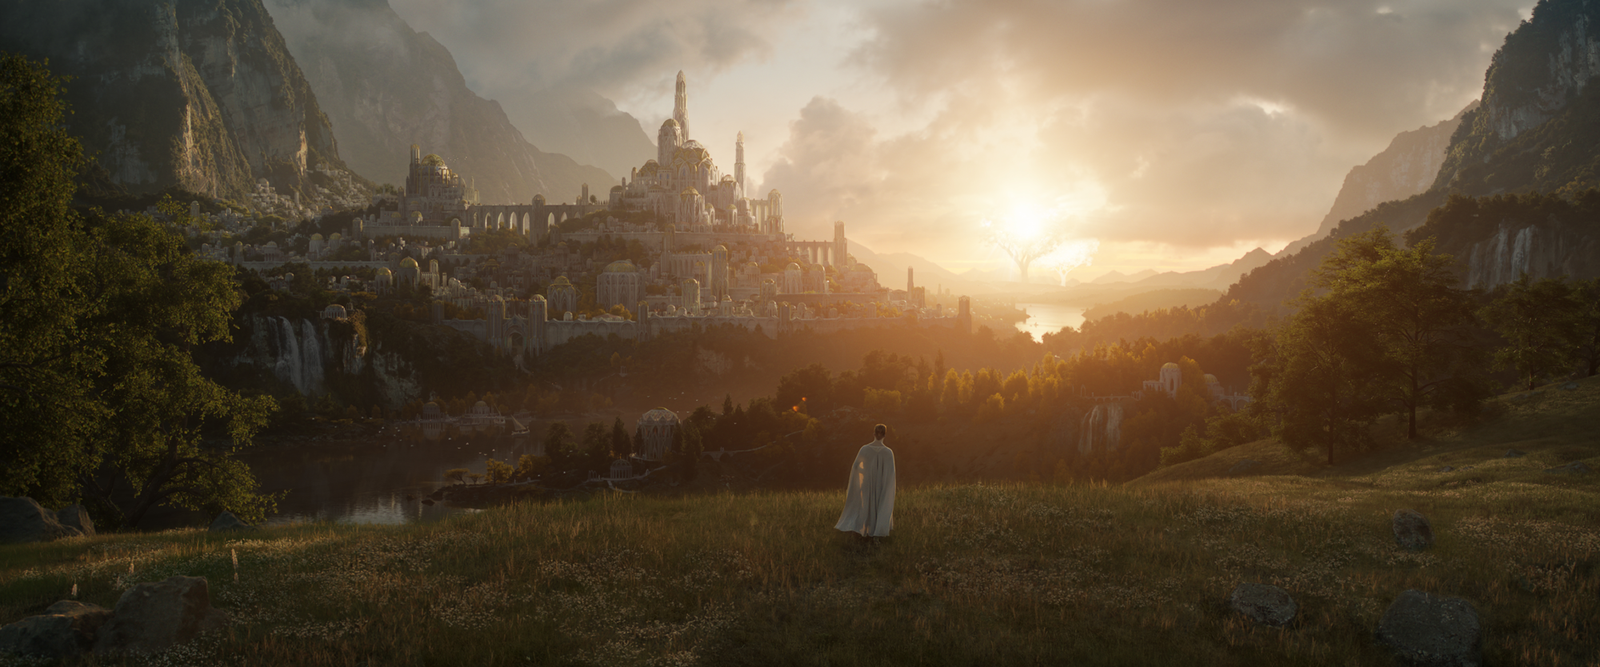 Lord of the Rings: Amazon reveals first image and release date for upcoming prequel series.